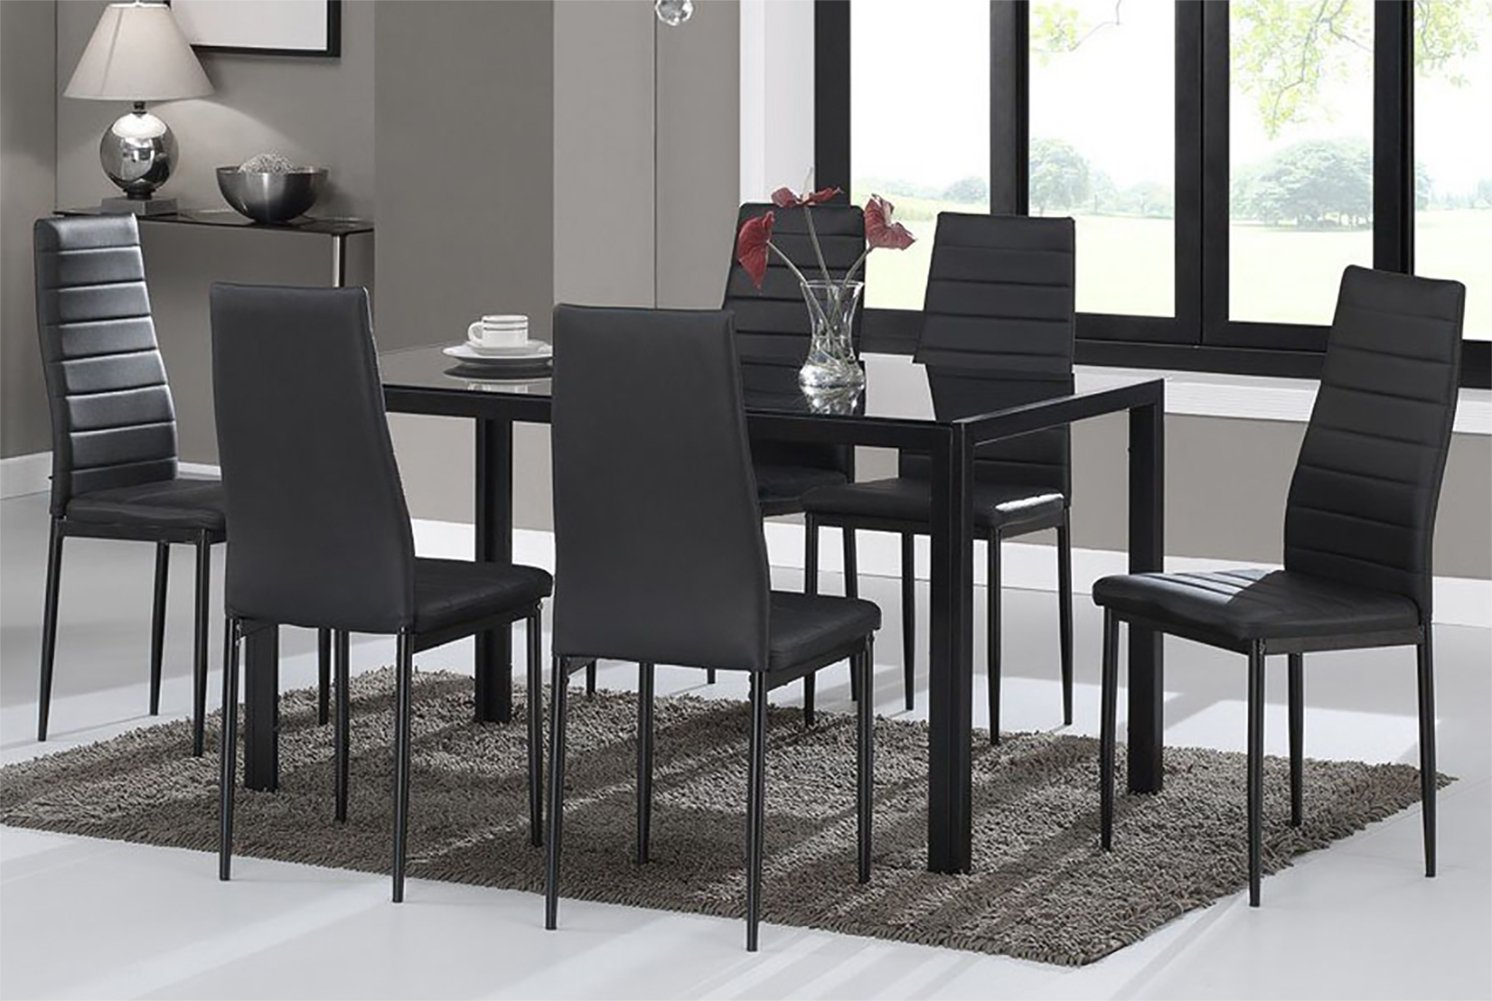 Prime Warmiehomy Dining Table Chairs Glass Dining Table Set And 6 Faux Leather Chairs Black Dining Table With 6 Chairs Download Free Architecture Designs Scobabritishbridgeorg